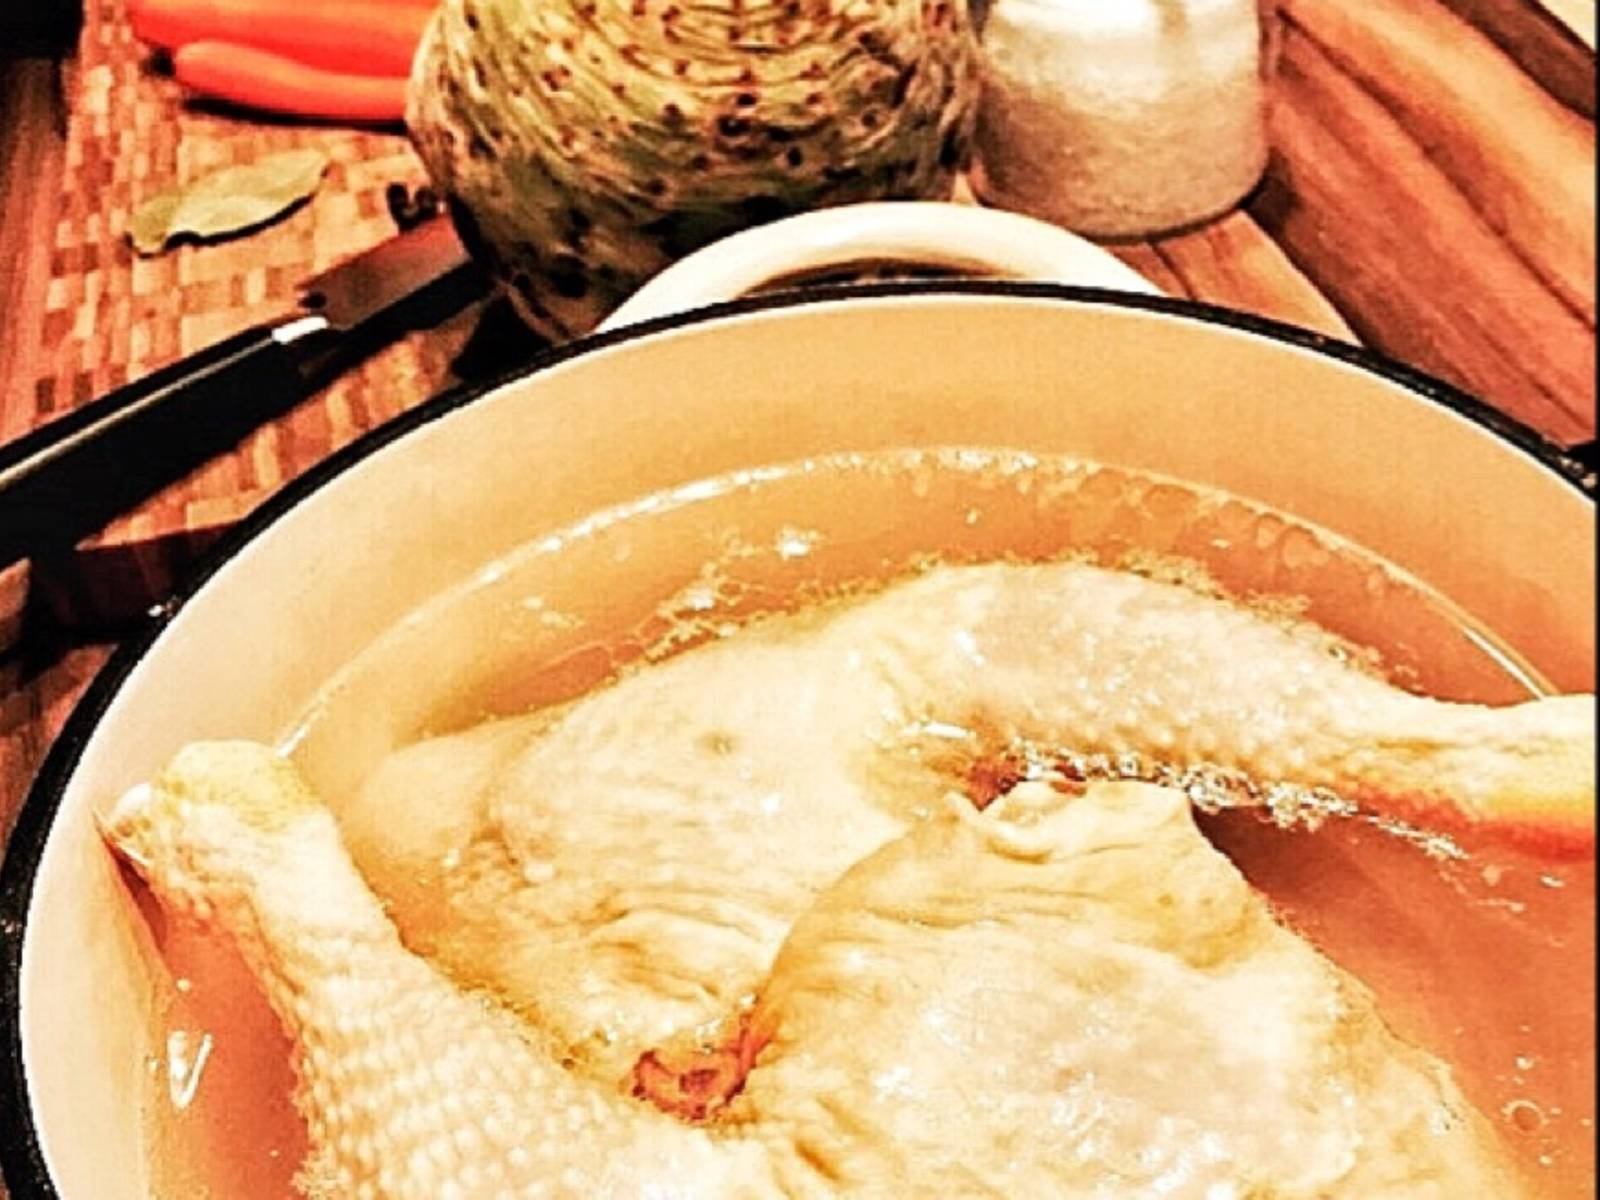 Put chicken thighs in a large pot with water. (Water should cover thighs, add more if necessary). Add salt.